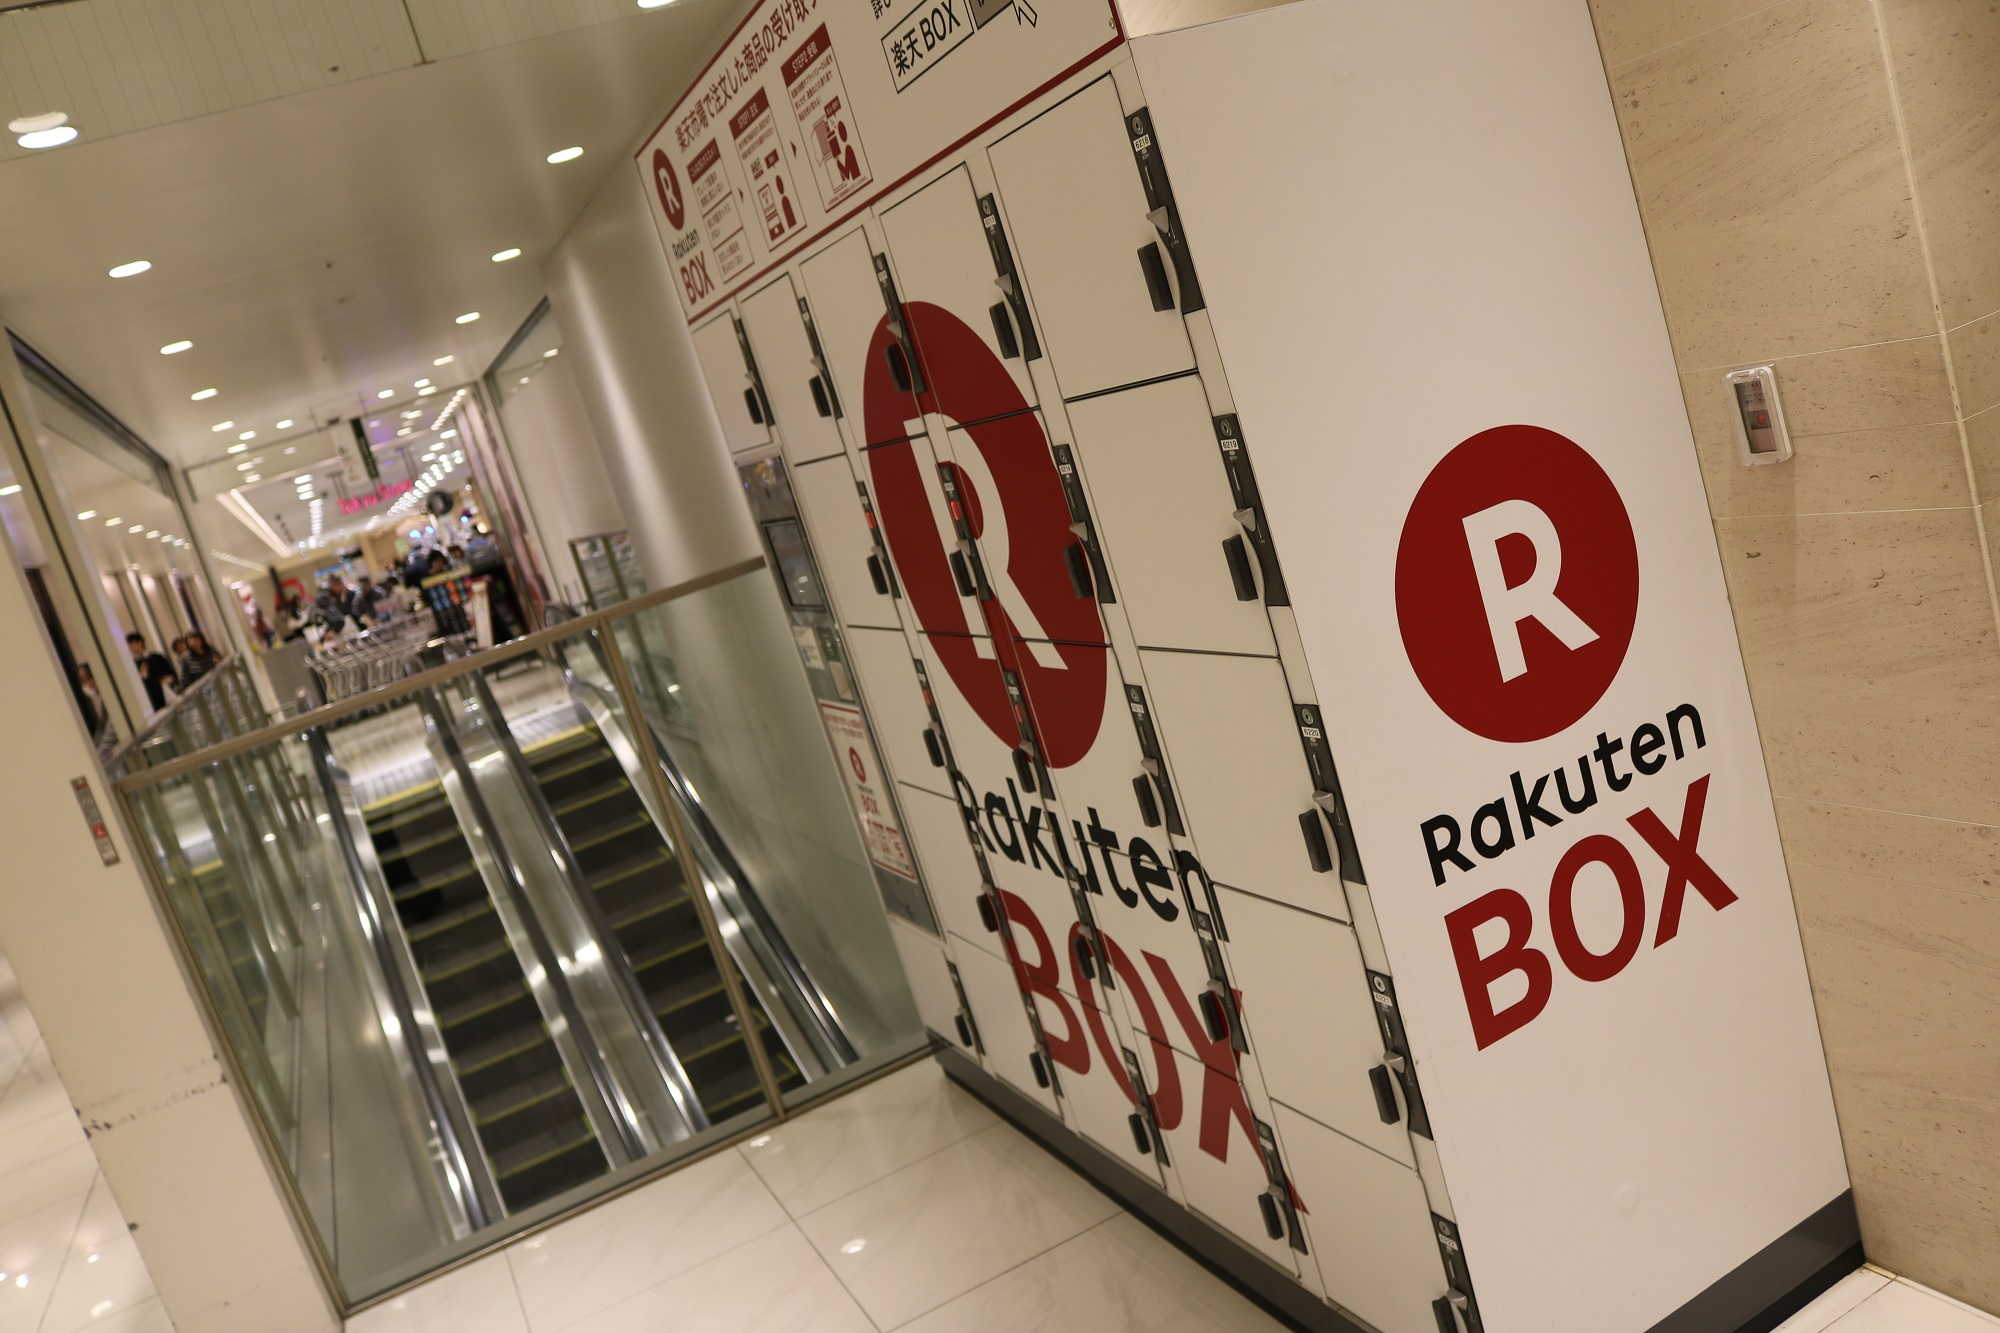 e-commerce delivery Rakuten teams up with Japan Post